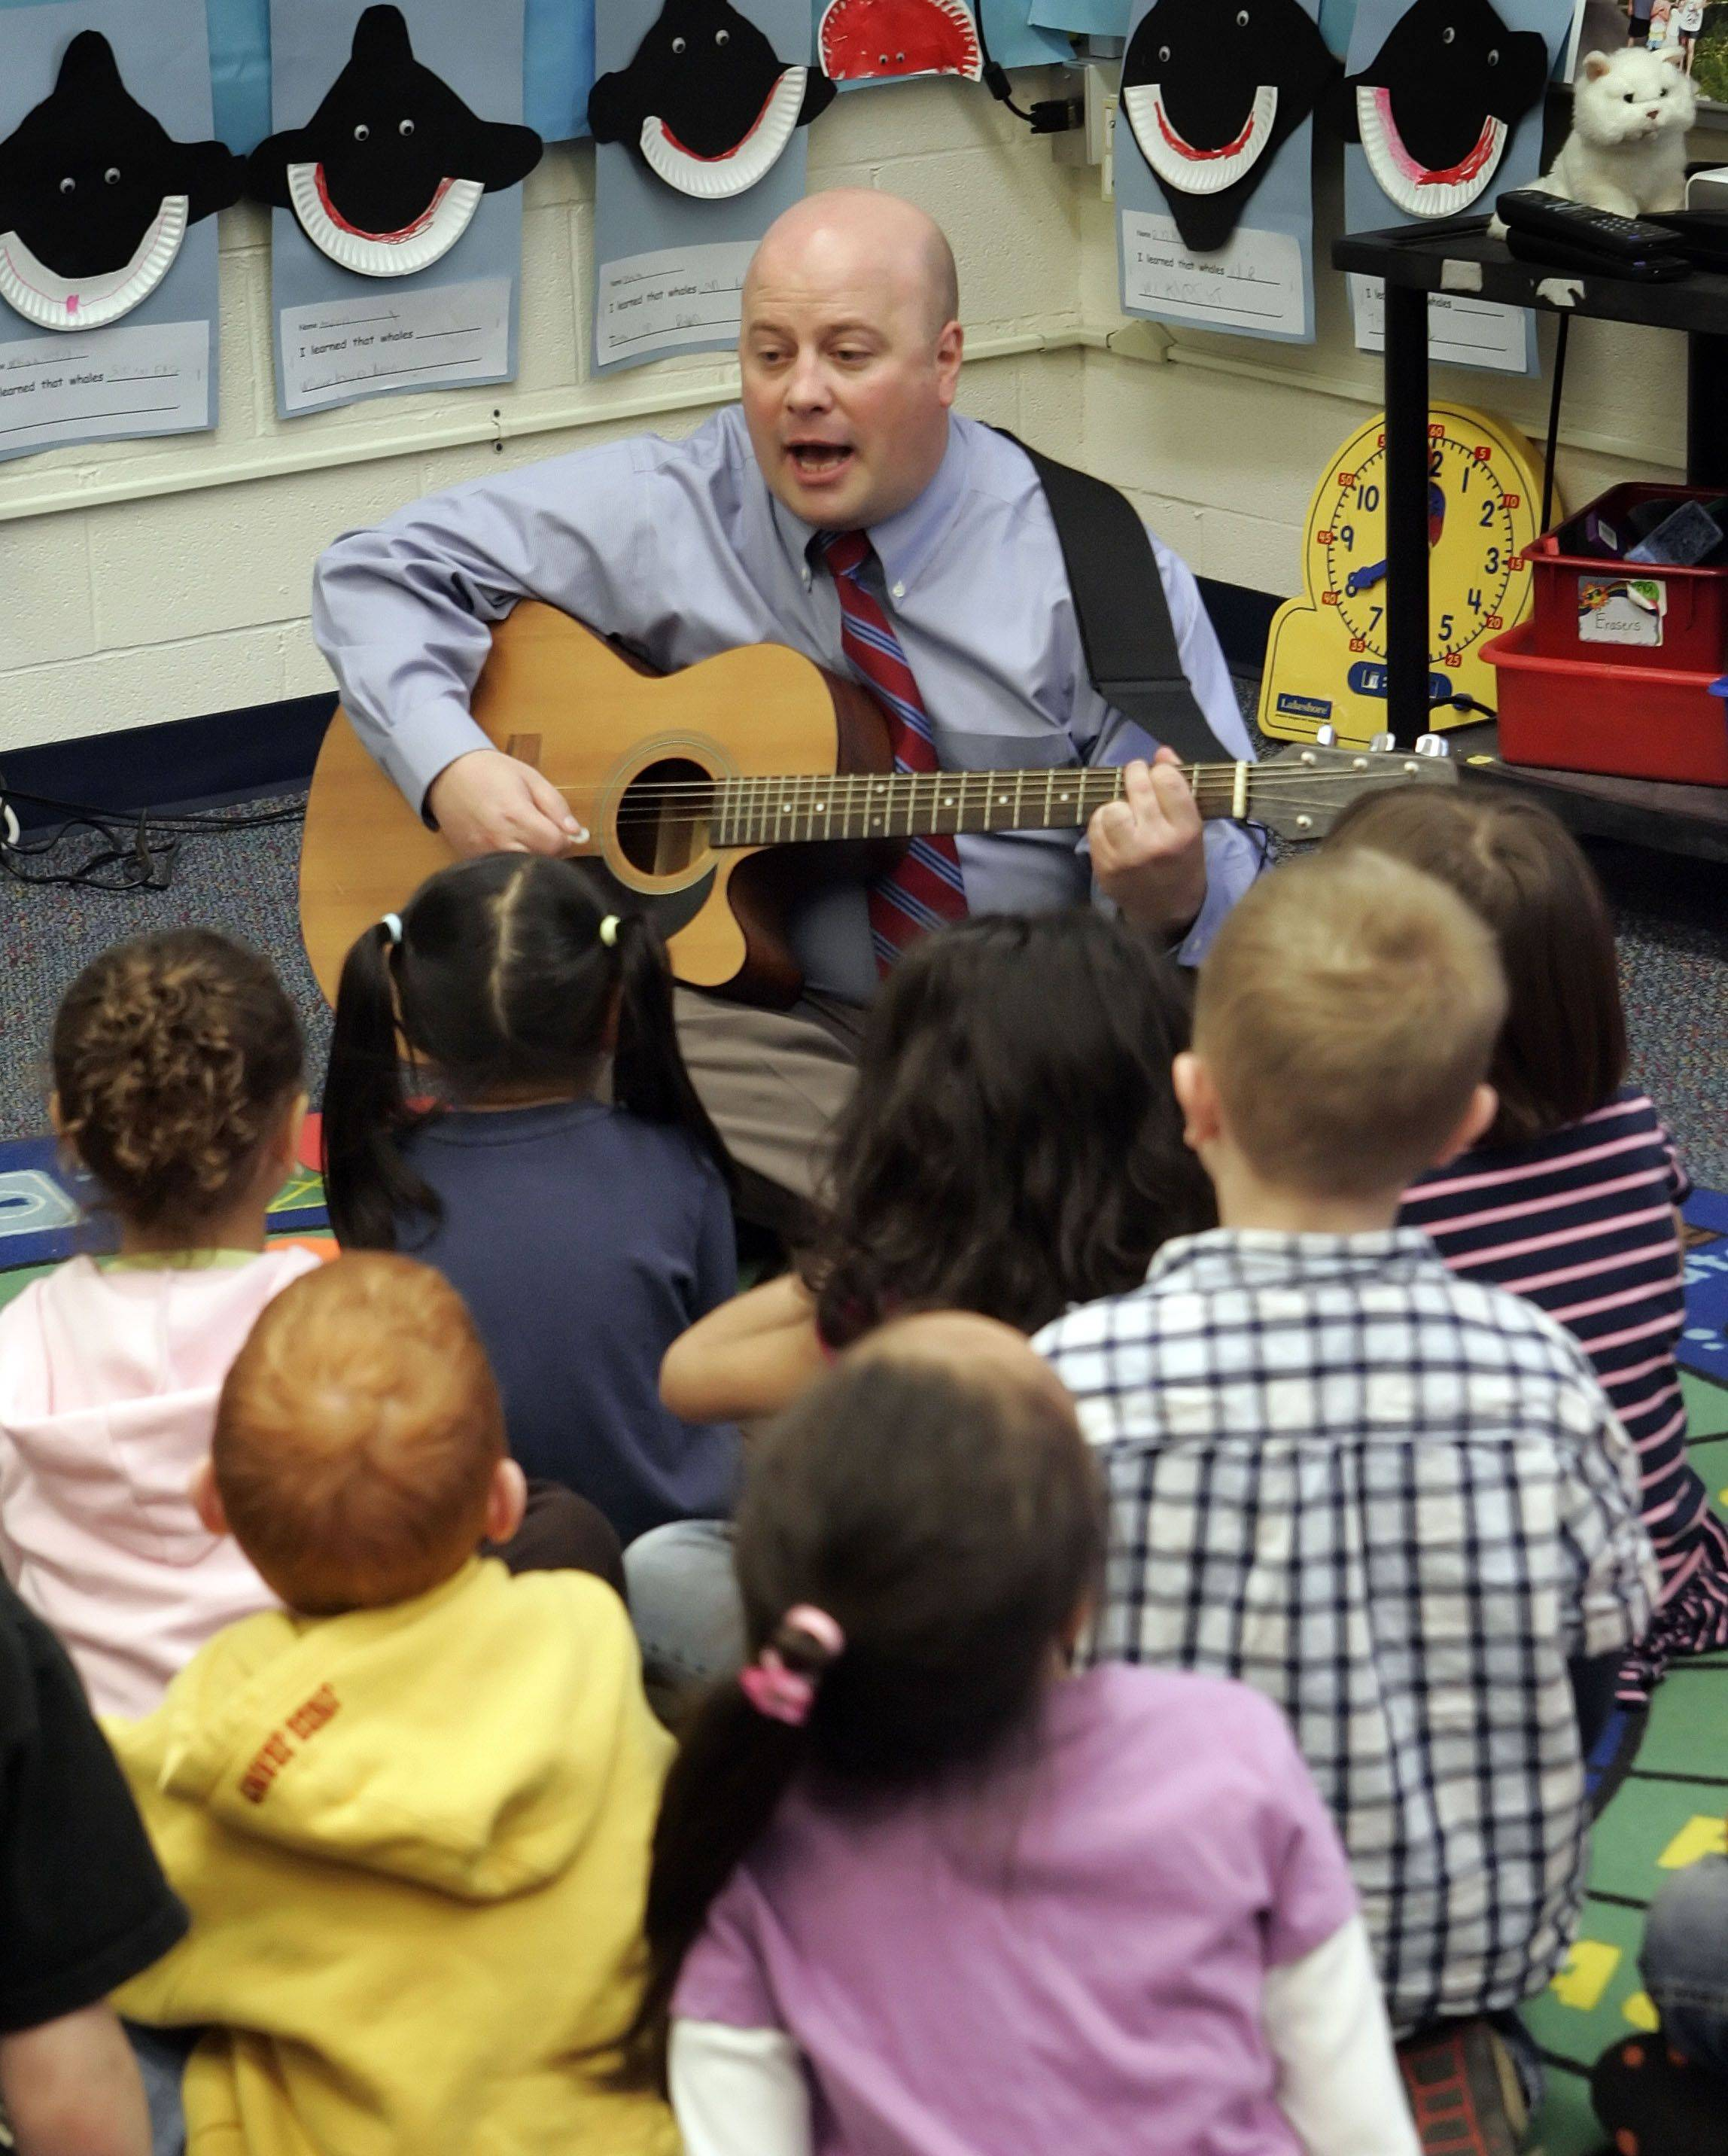 Adler Park School Principal Jon Bogie entertains the kindergarten class with his guitar in Libertyville. Bogie took over as principal this school year, replacing Janet Brownlie, who retired.